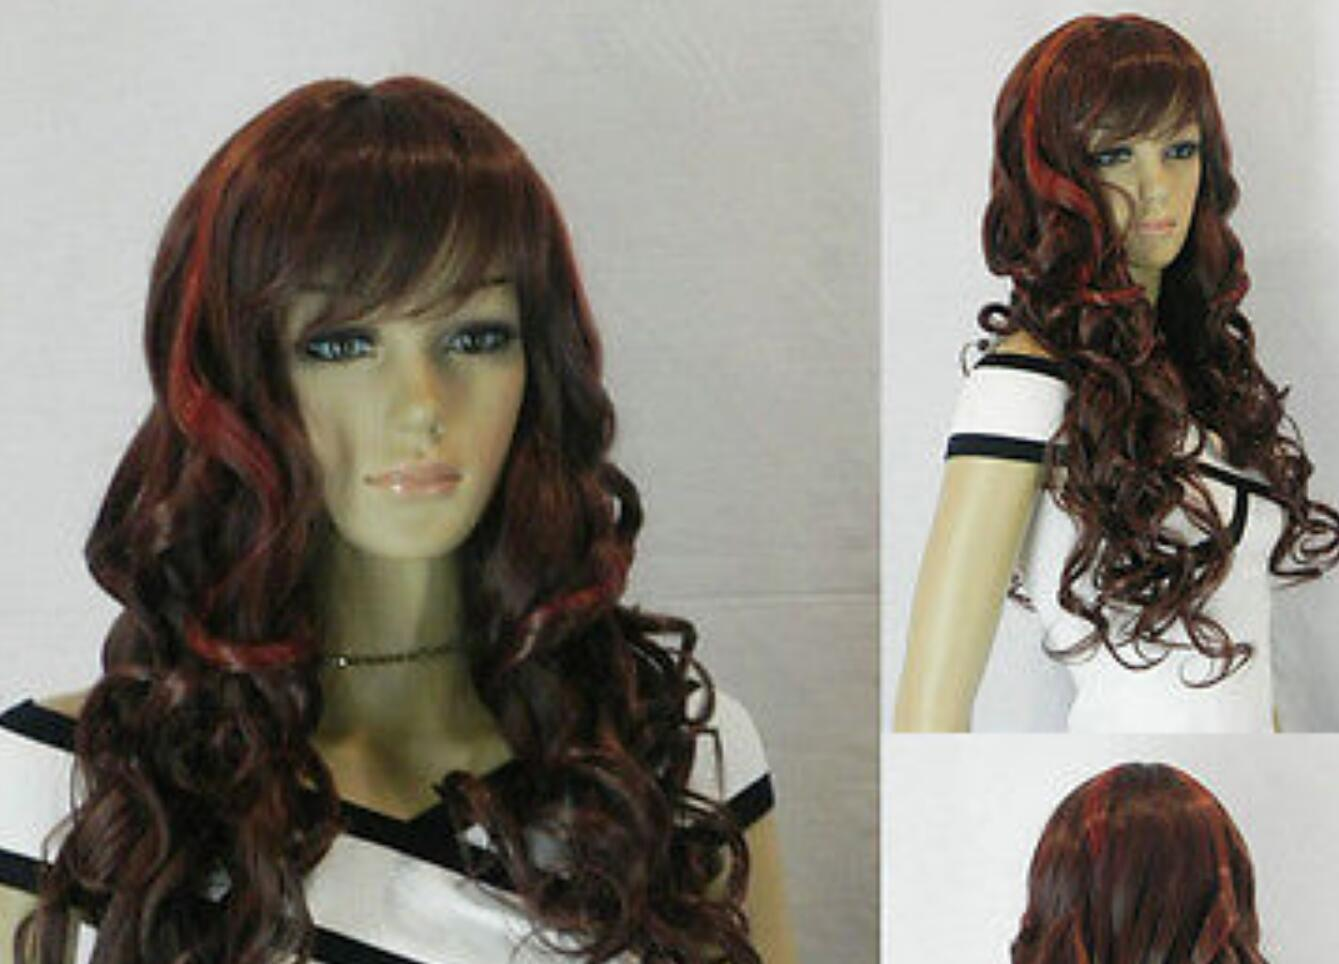 WIG LL Marie Anime Style Long Wavy Hair Wig Costume Black White Bear Mix Wig Renaissance Costume wigs fast deliv